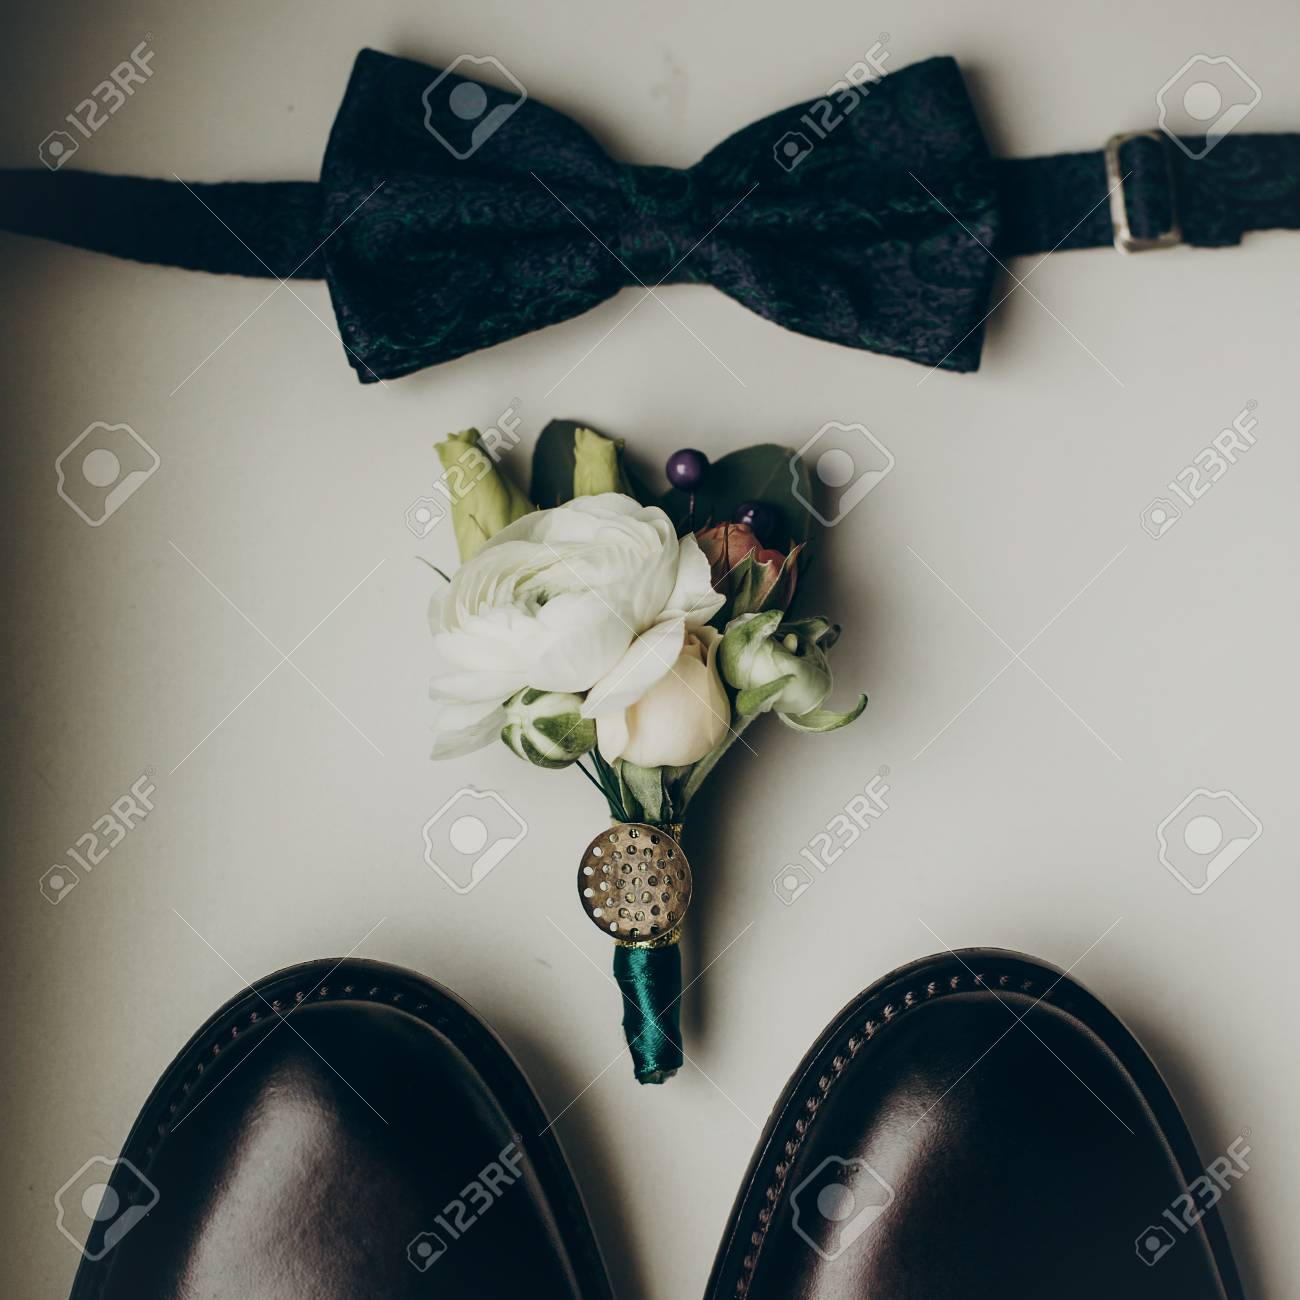 5c94db3b37d Stock Photo - stylish wedding bow tie with modern flowers bouquet and shoes  on wooden background top view. rustic wedding morning preparation. groom  set. ...